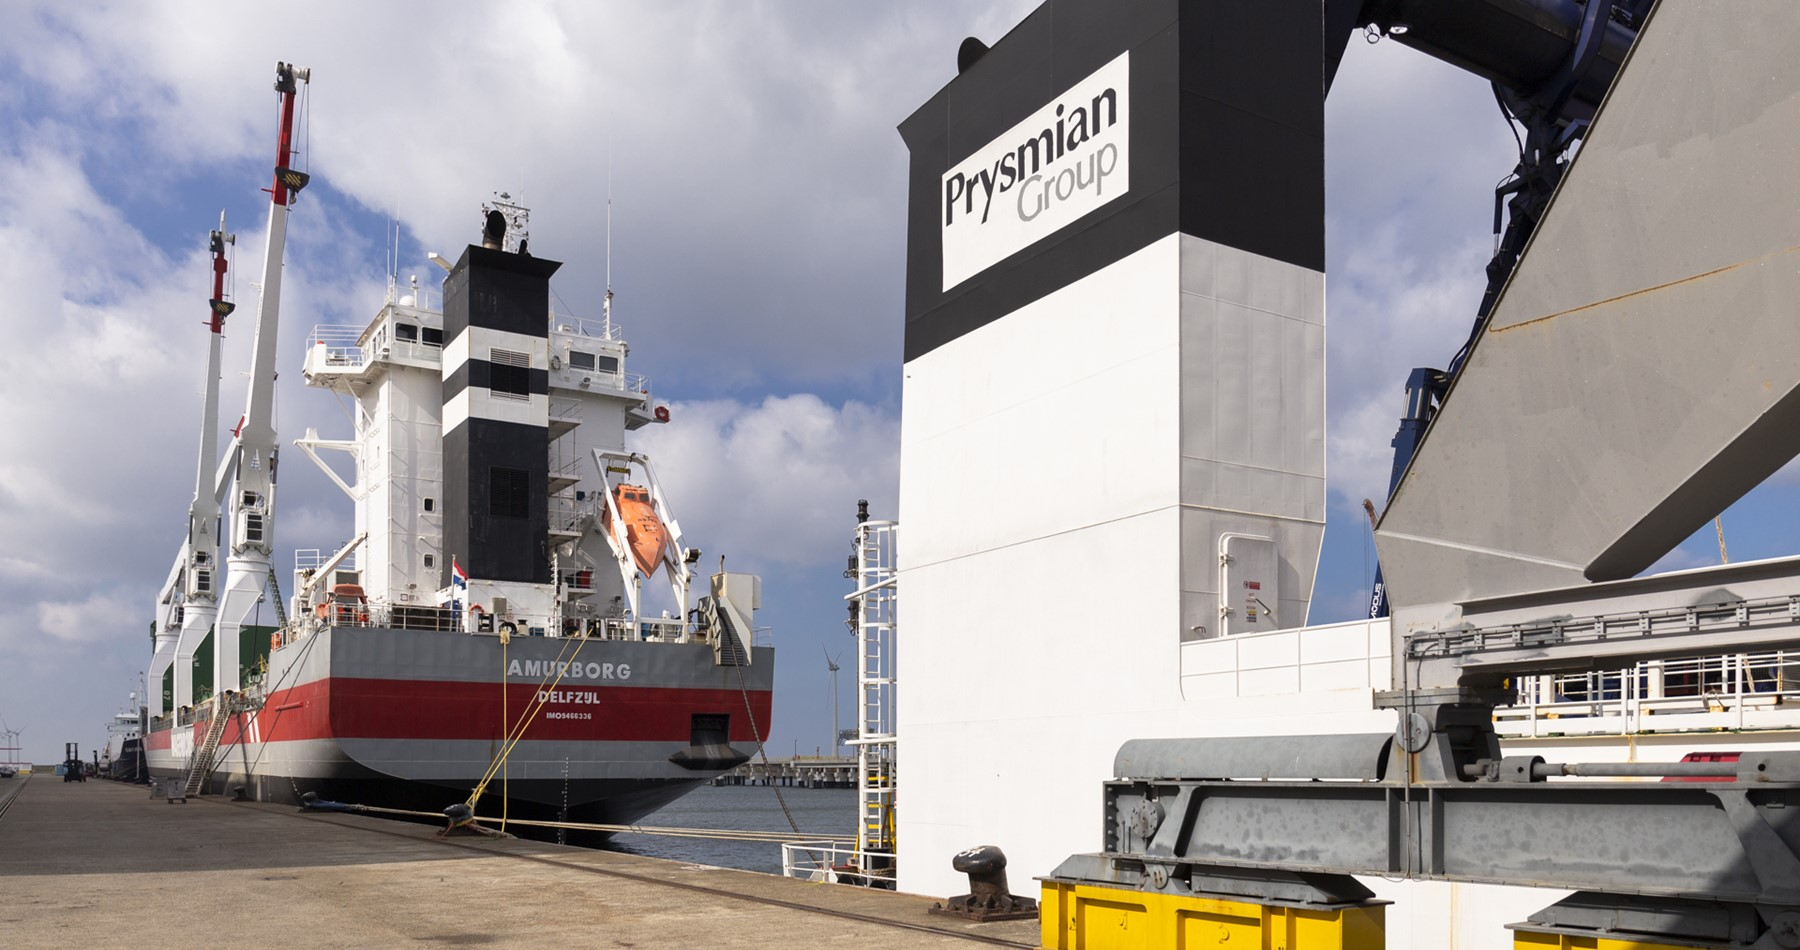 Amurborg and Azoresborg shipped cables to Eemshaven